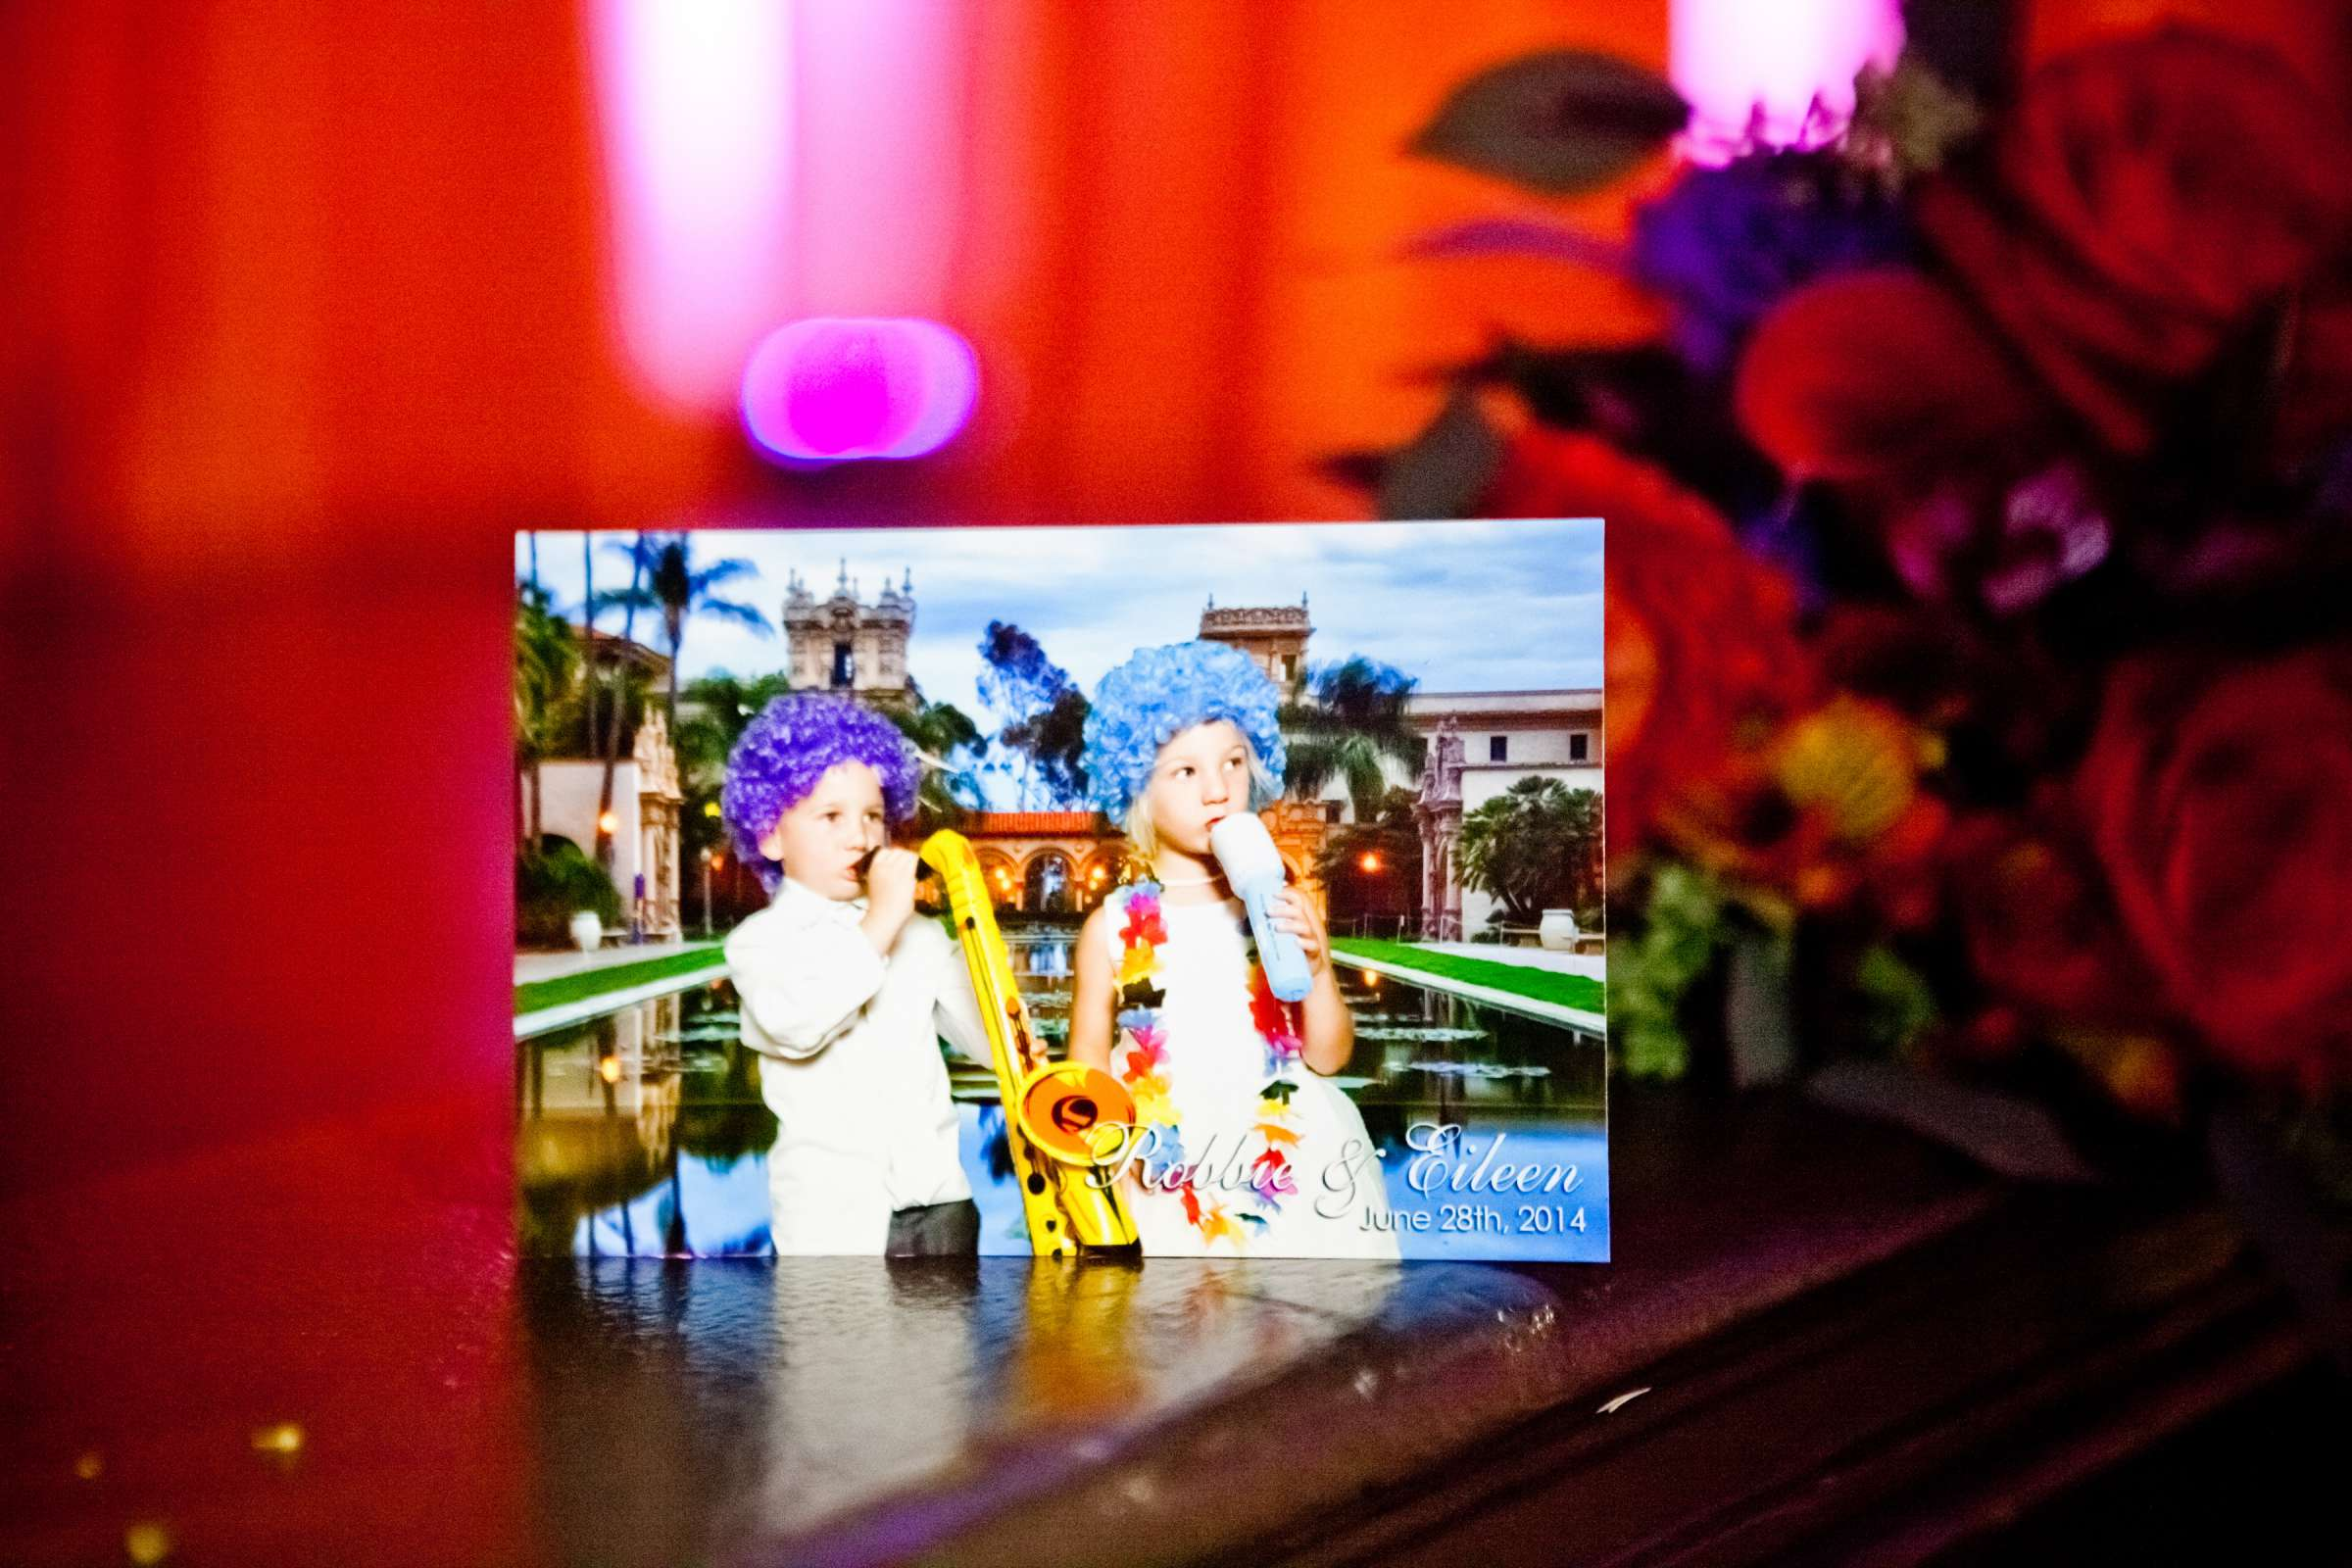 The Prado Wedding coordinated by Monarch Weddings, Eileen and Robbie Wedding Photo #67 by True Photography